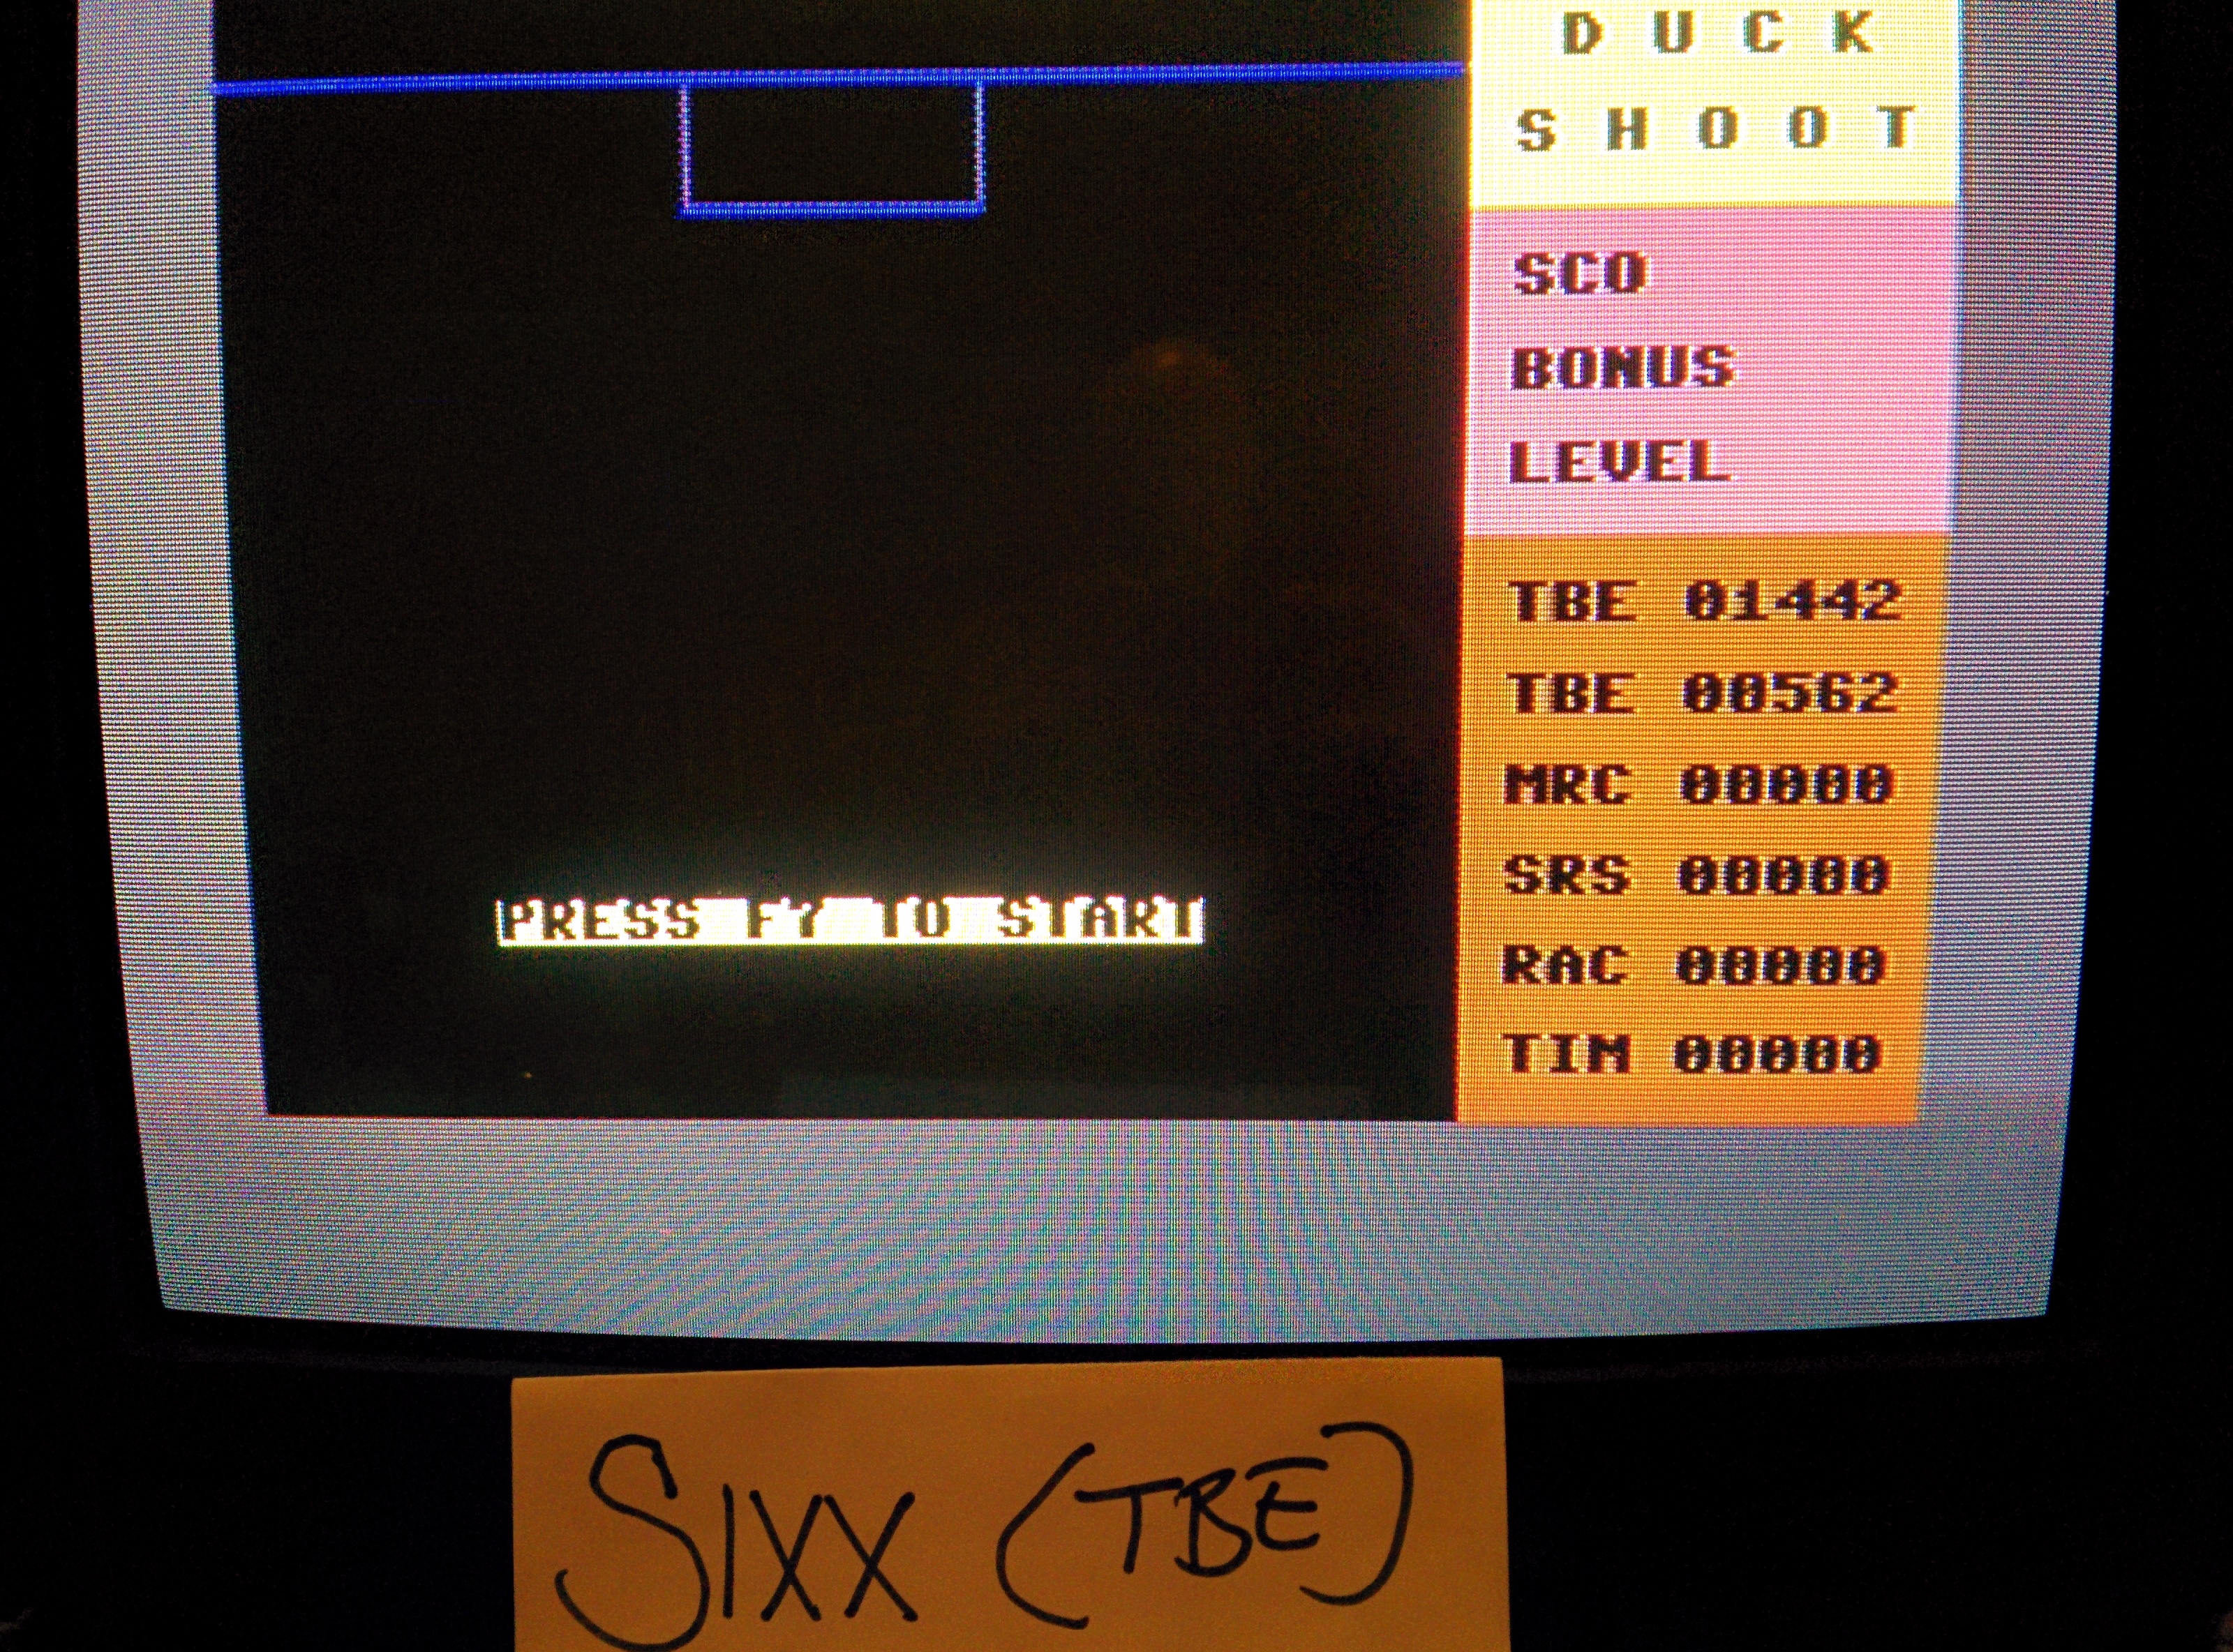 Sixx: Duck Shoot [Mastertronic] (Commodore 64) 1,442 points on 2014-08-02 15:11:40